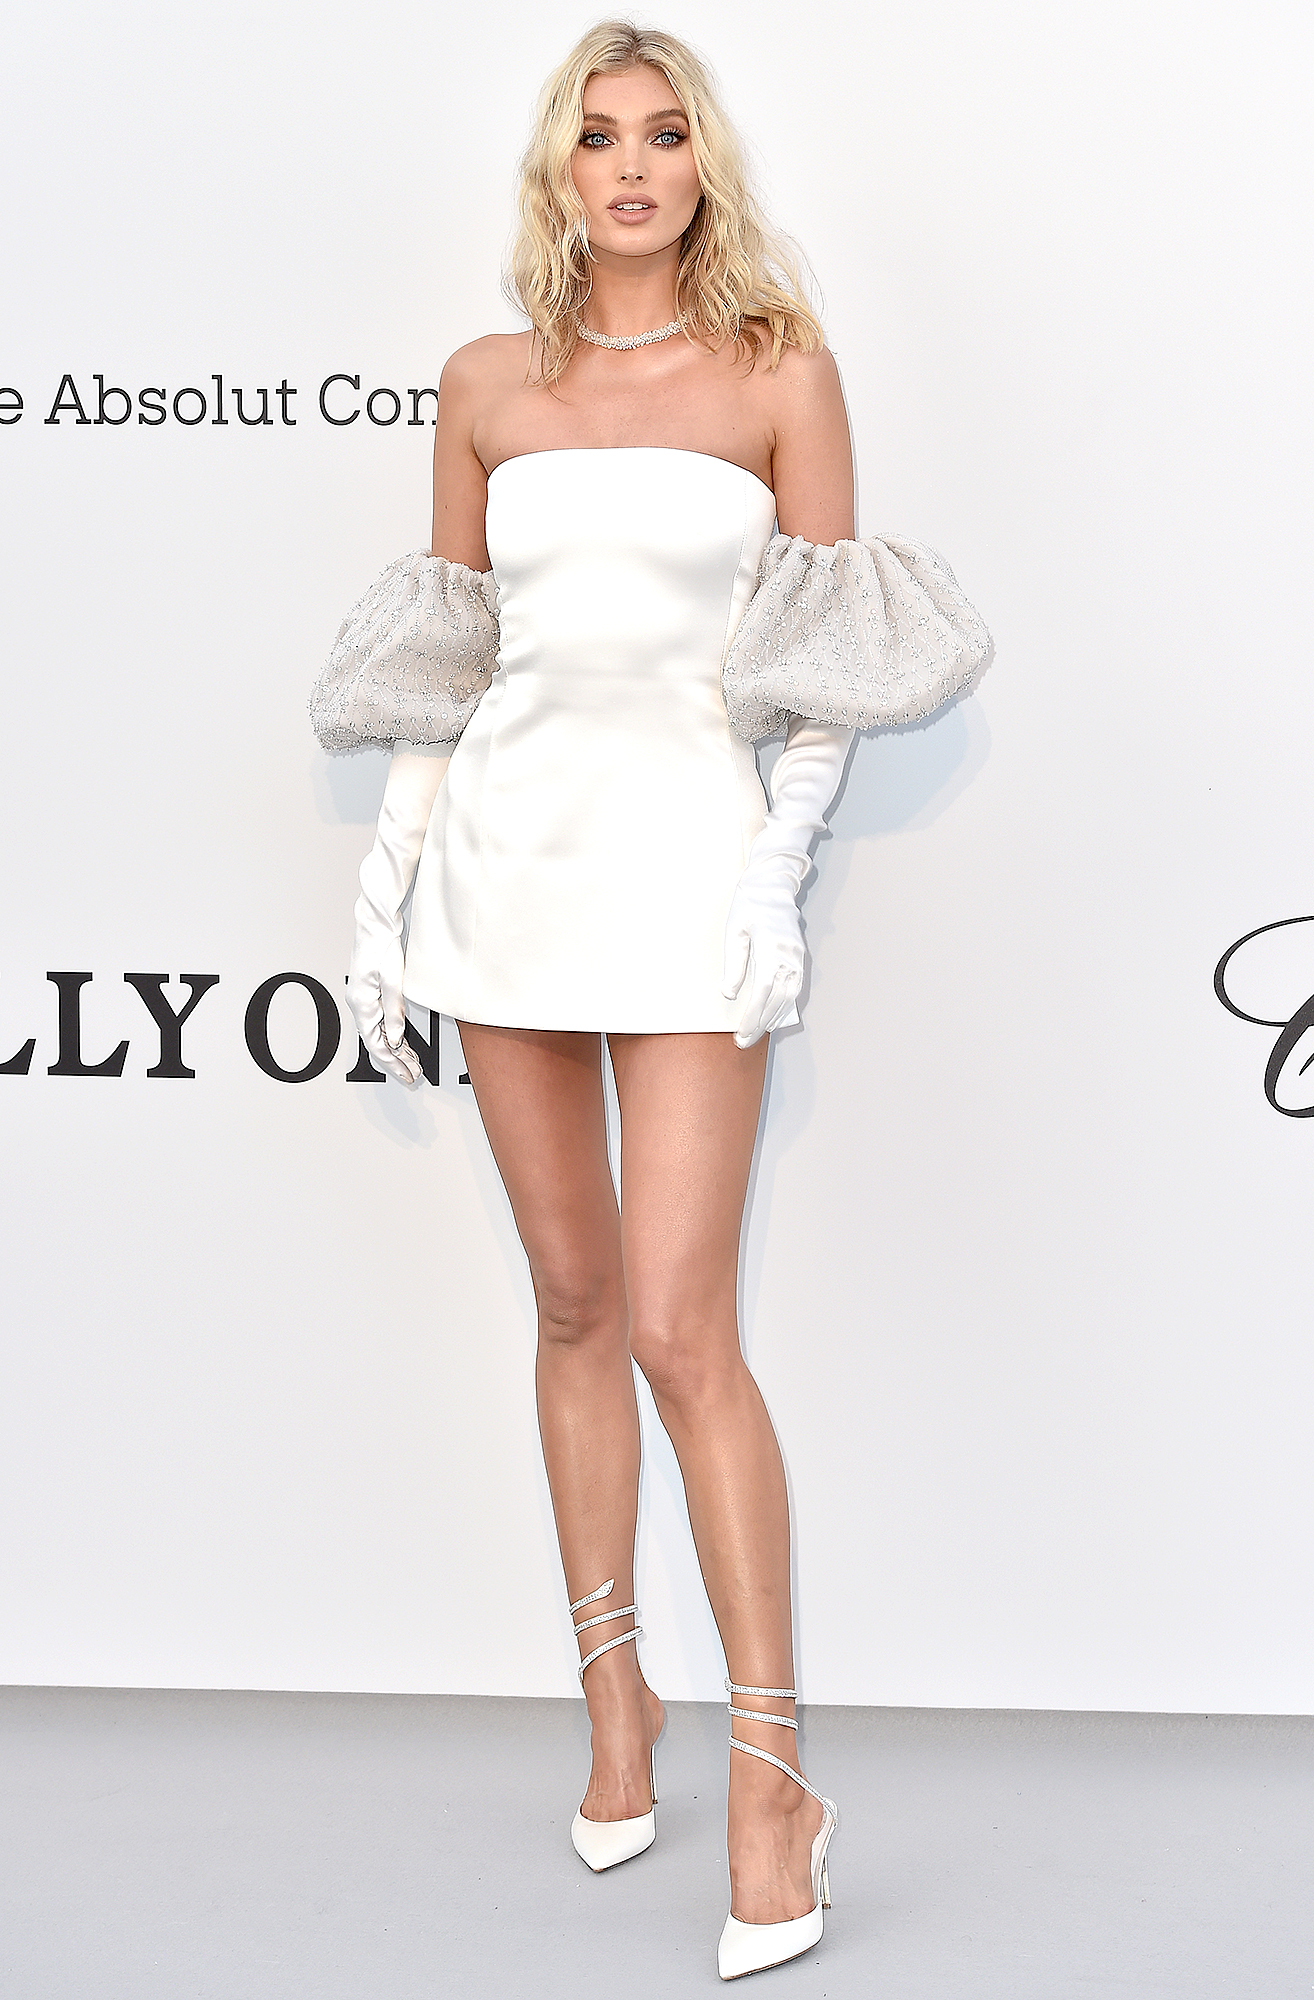 Elsa-Hosk - The Victoria's Secret Angel kept things short and sweet in her mini Redemption number at the amfAR Cannes Gala on Thursday, May 23.